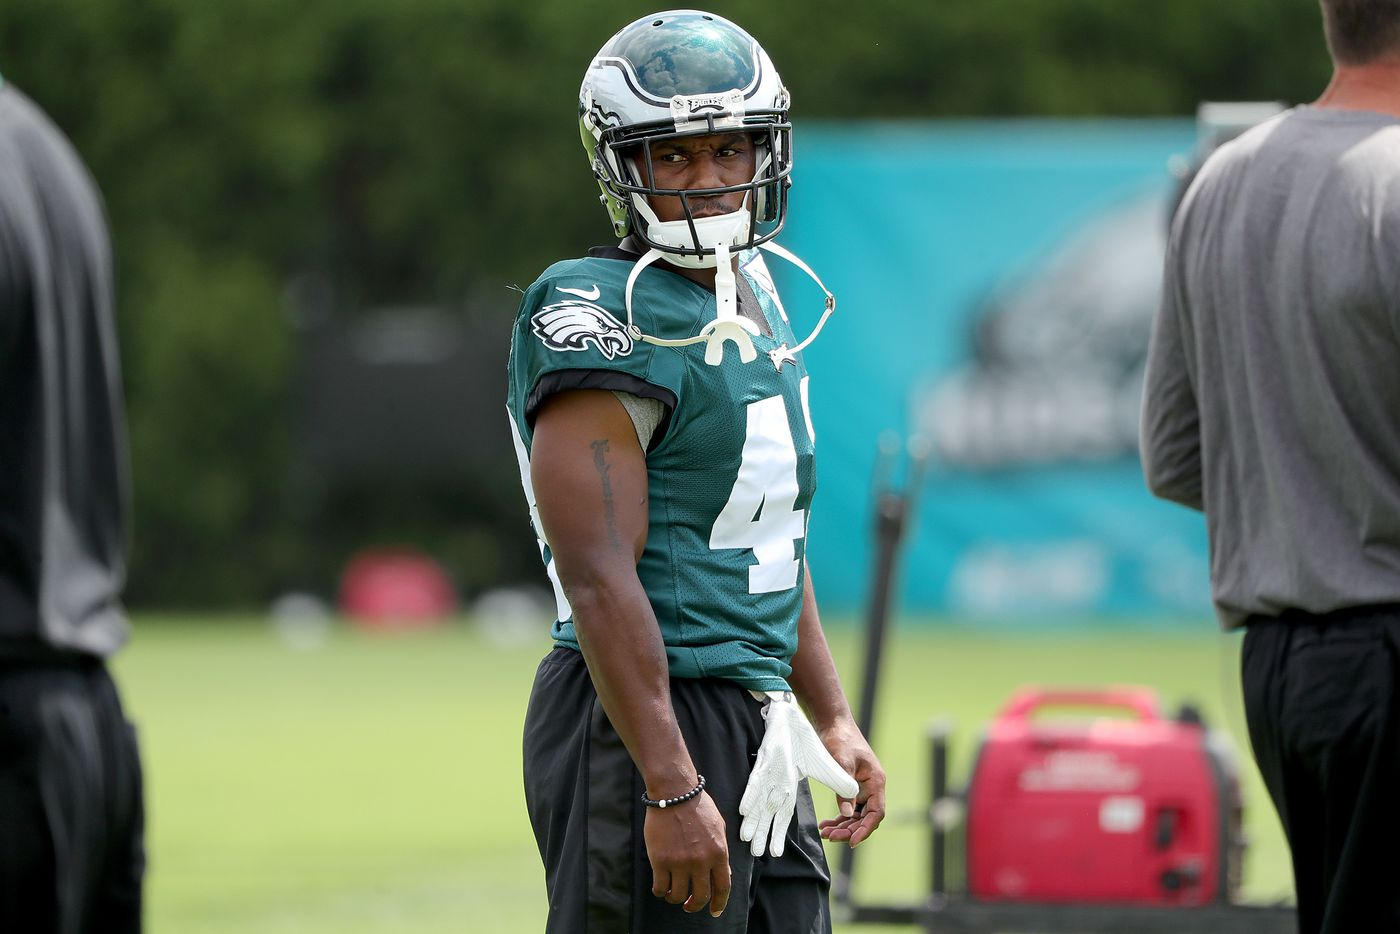 Darren Sproles returns to Eagles backfield, and Corey Clement is happy to study at his side | Mike Sielski